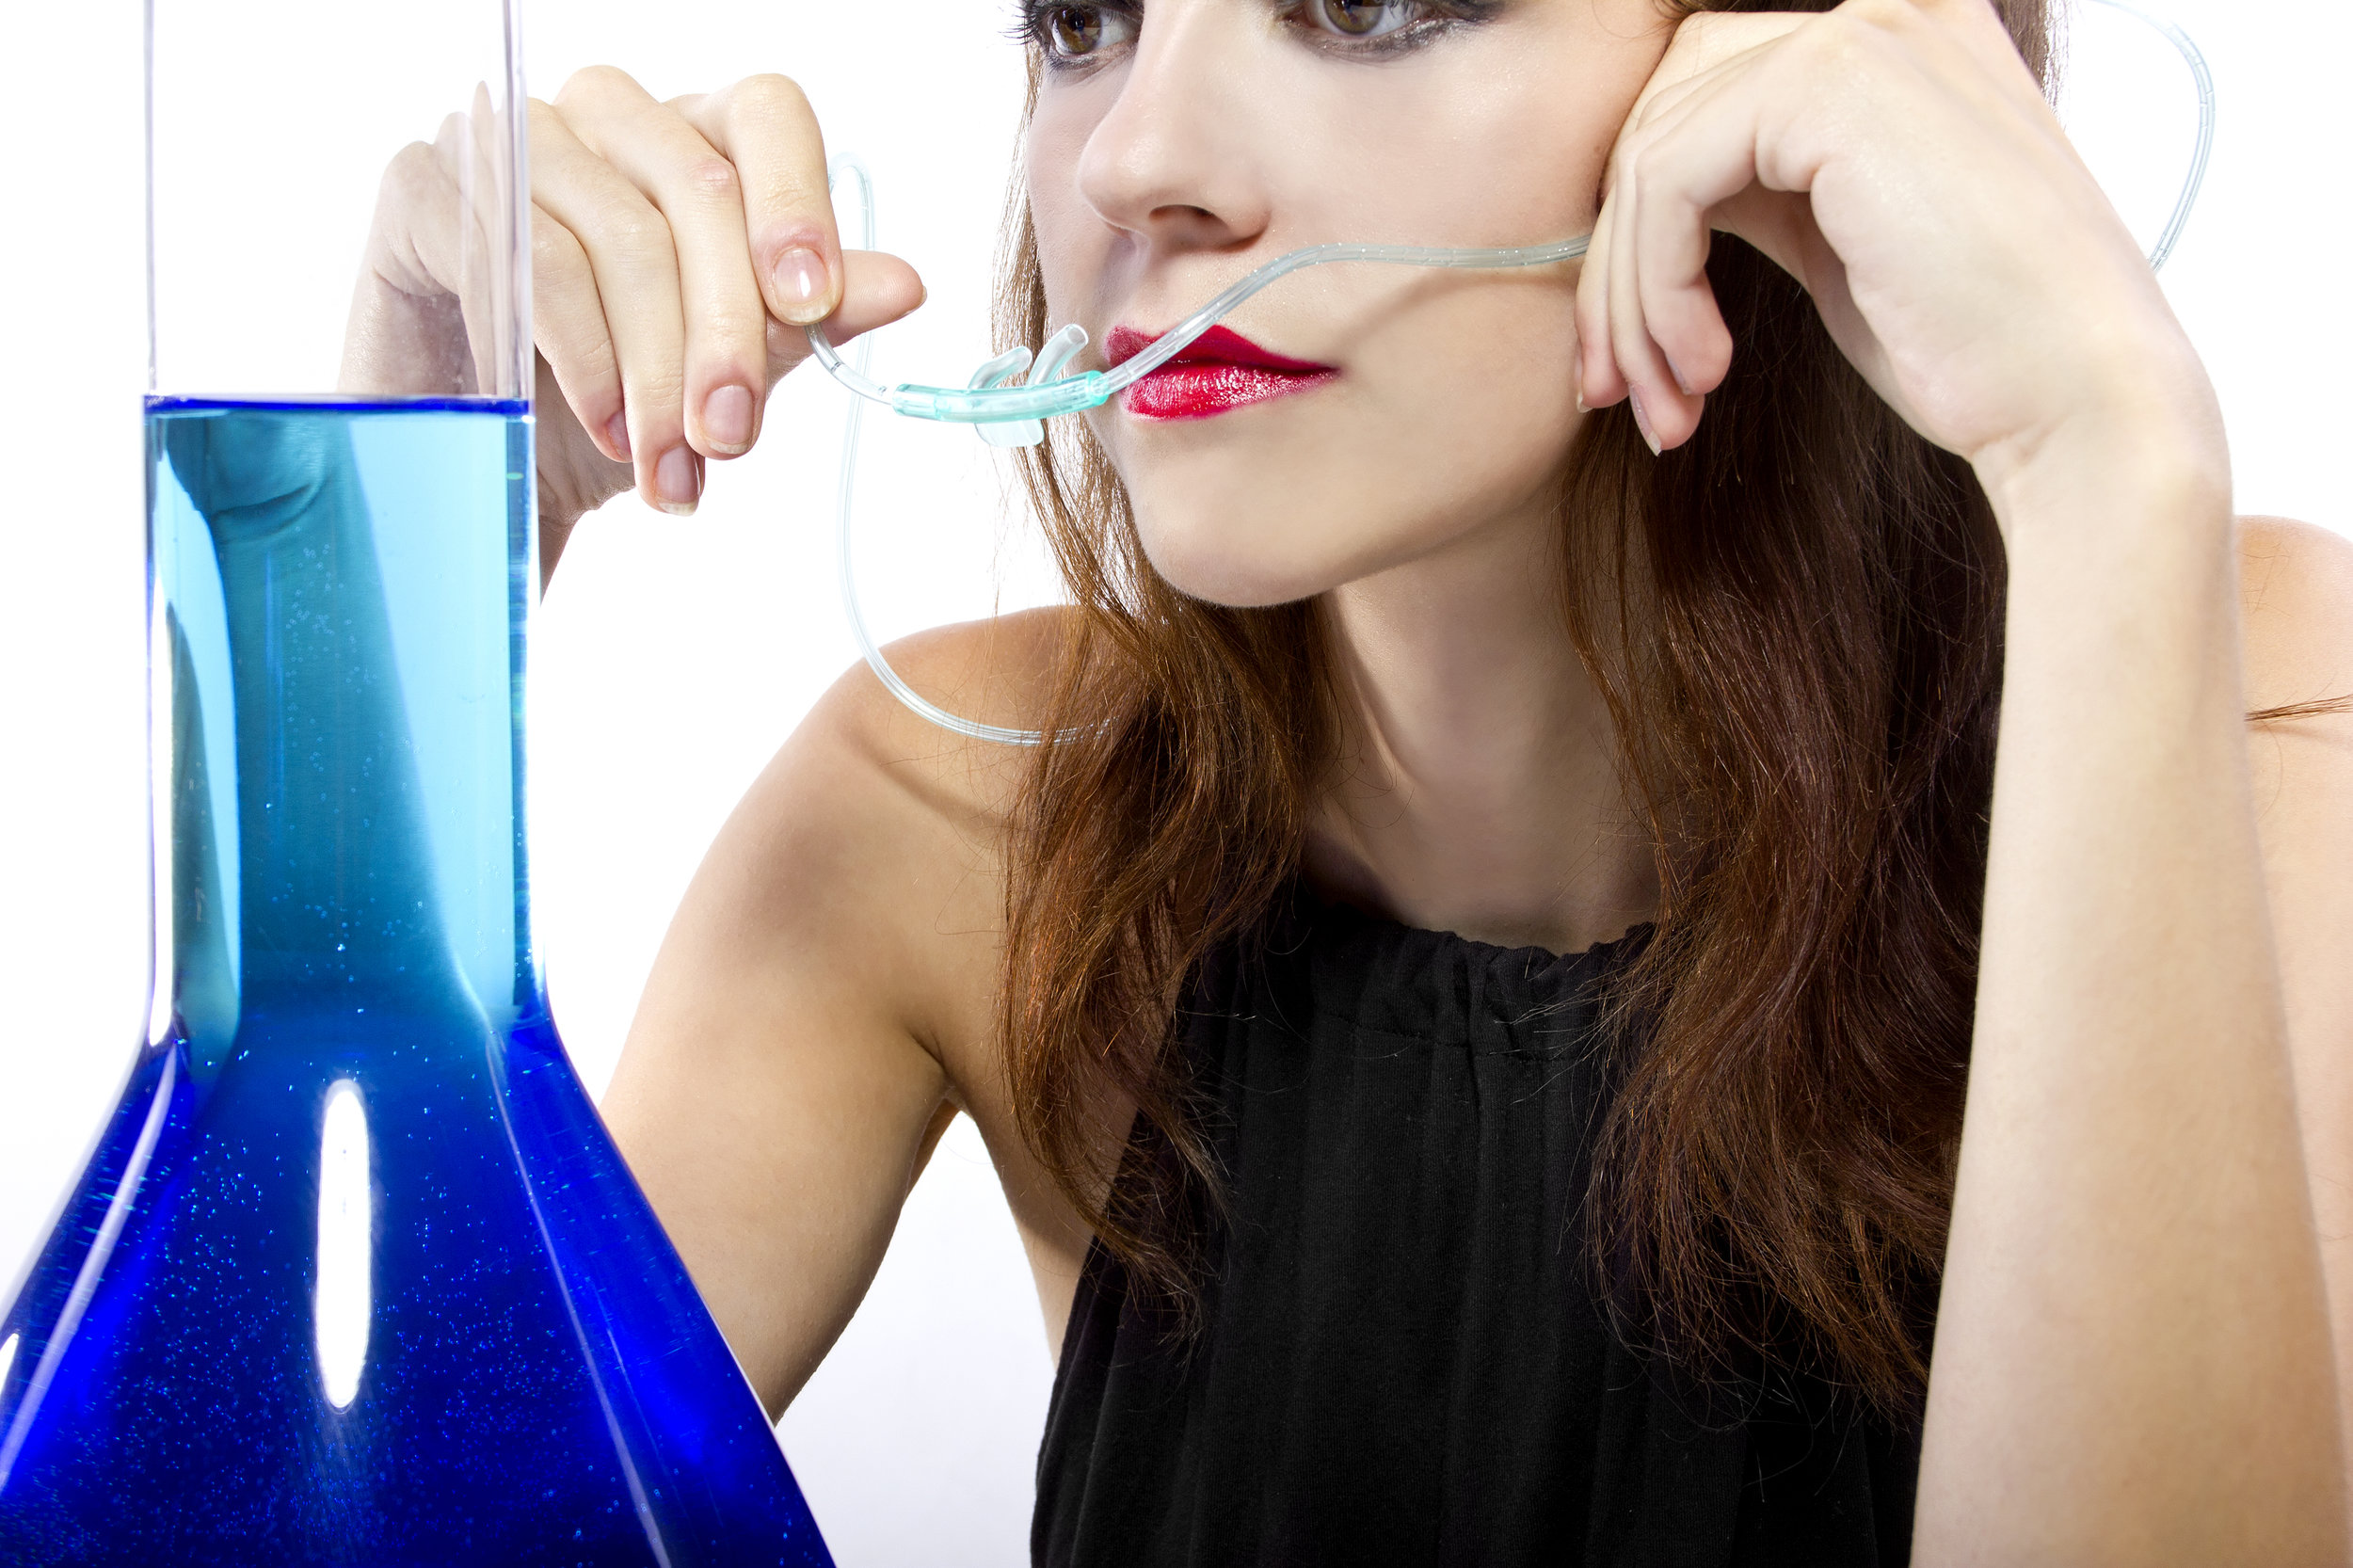 We Love Helping! - All of our oxygen bar clients are offered hot tea, water and a warm shoulder wrap. You can also sample our altitude adjustment aromatherapy treatment cream.